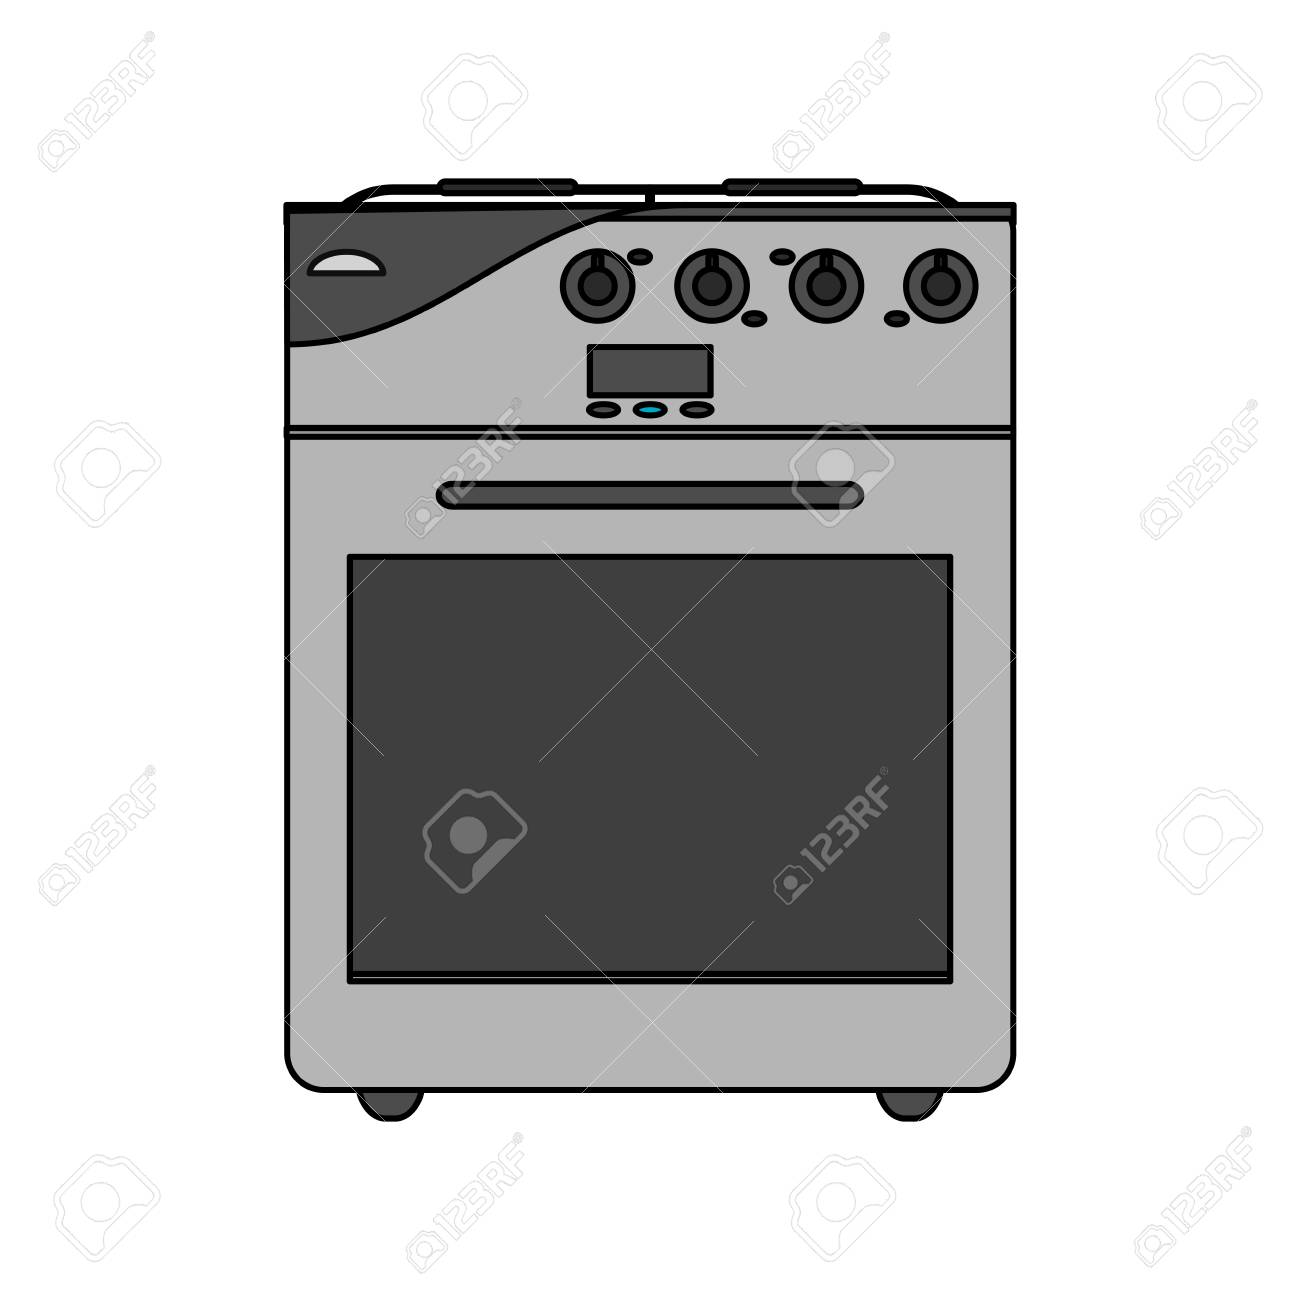 color image cartoon stove gas with oven vector illustration royalty